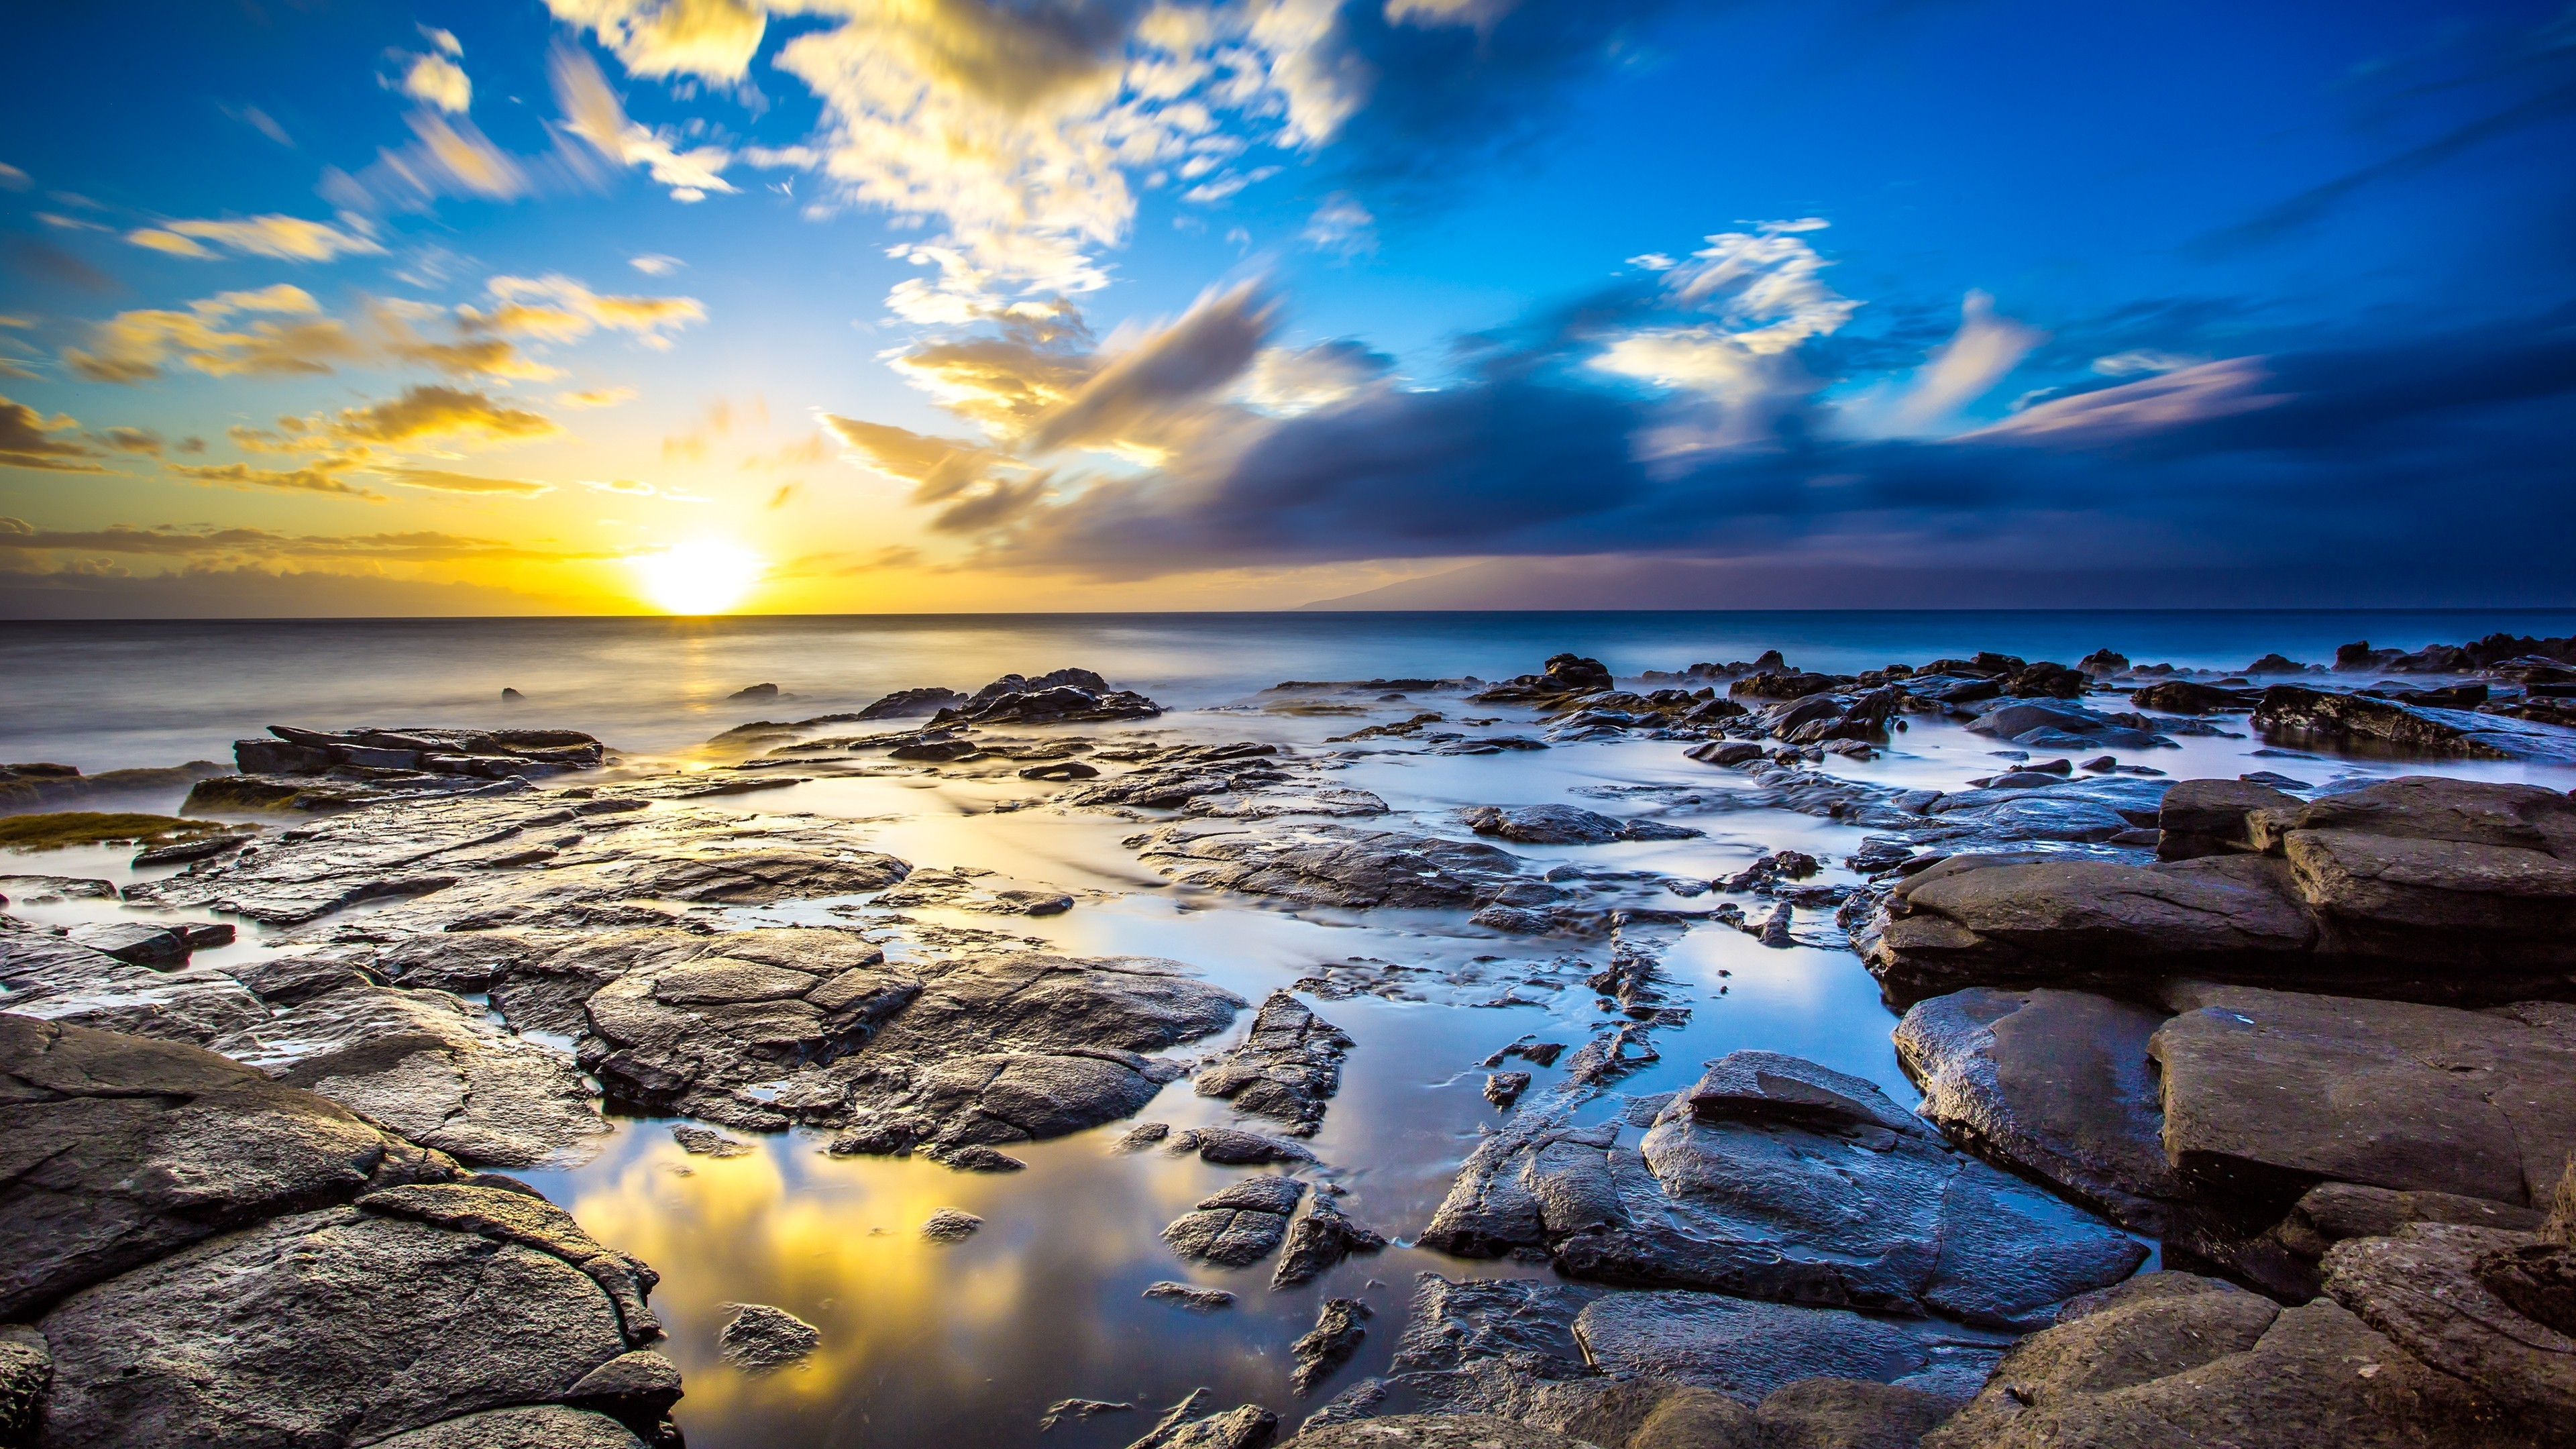 1920x1080 VM Backgrounds Collection A Free Wallpaper Ocean Scenes Beach By T HD